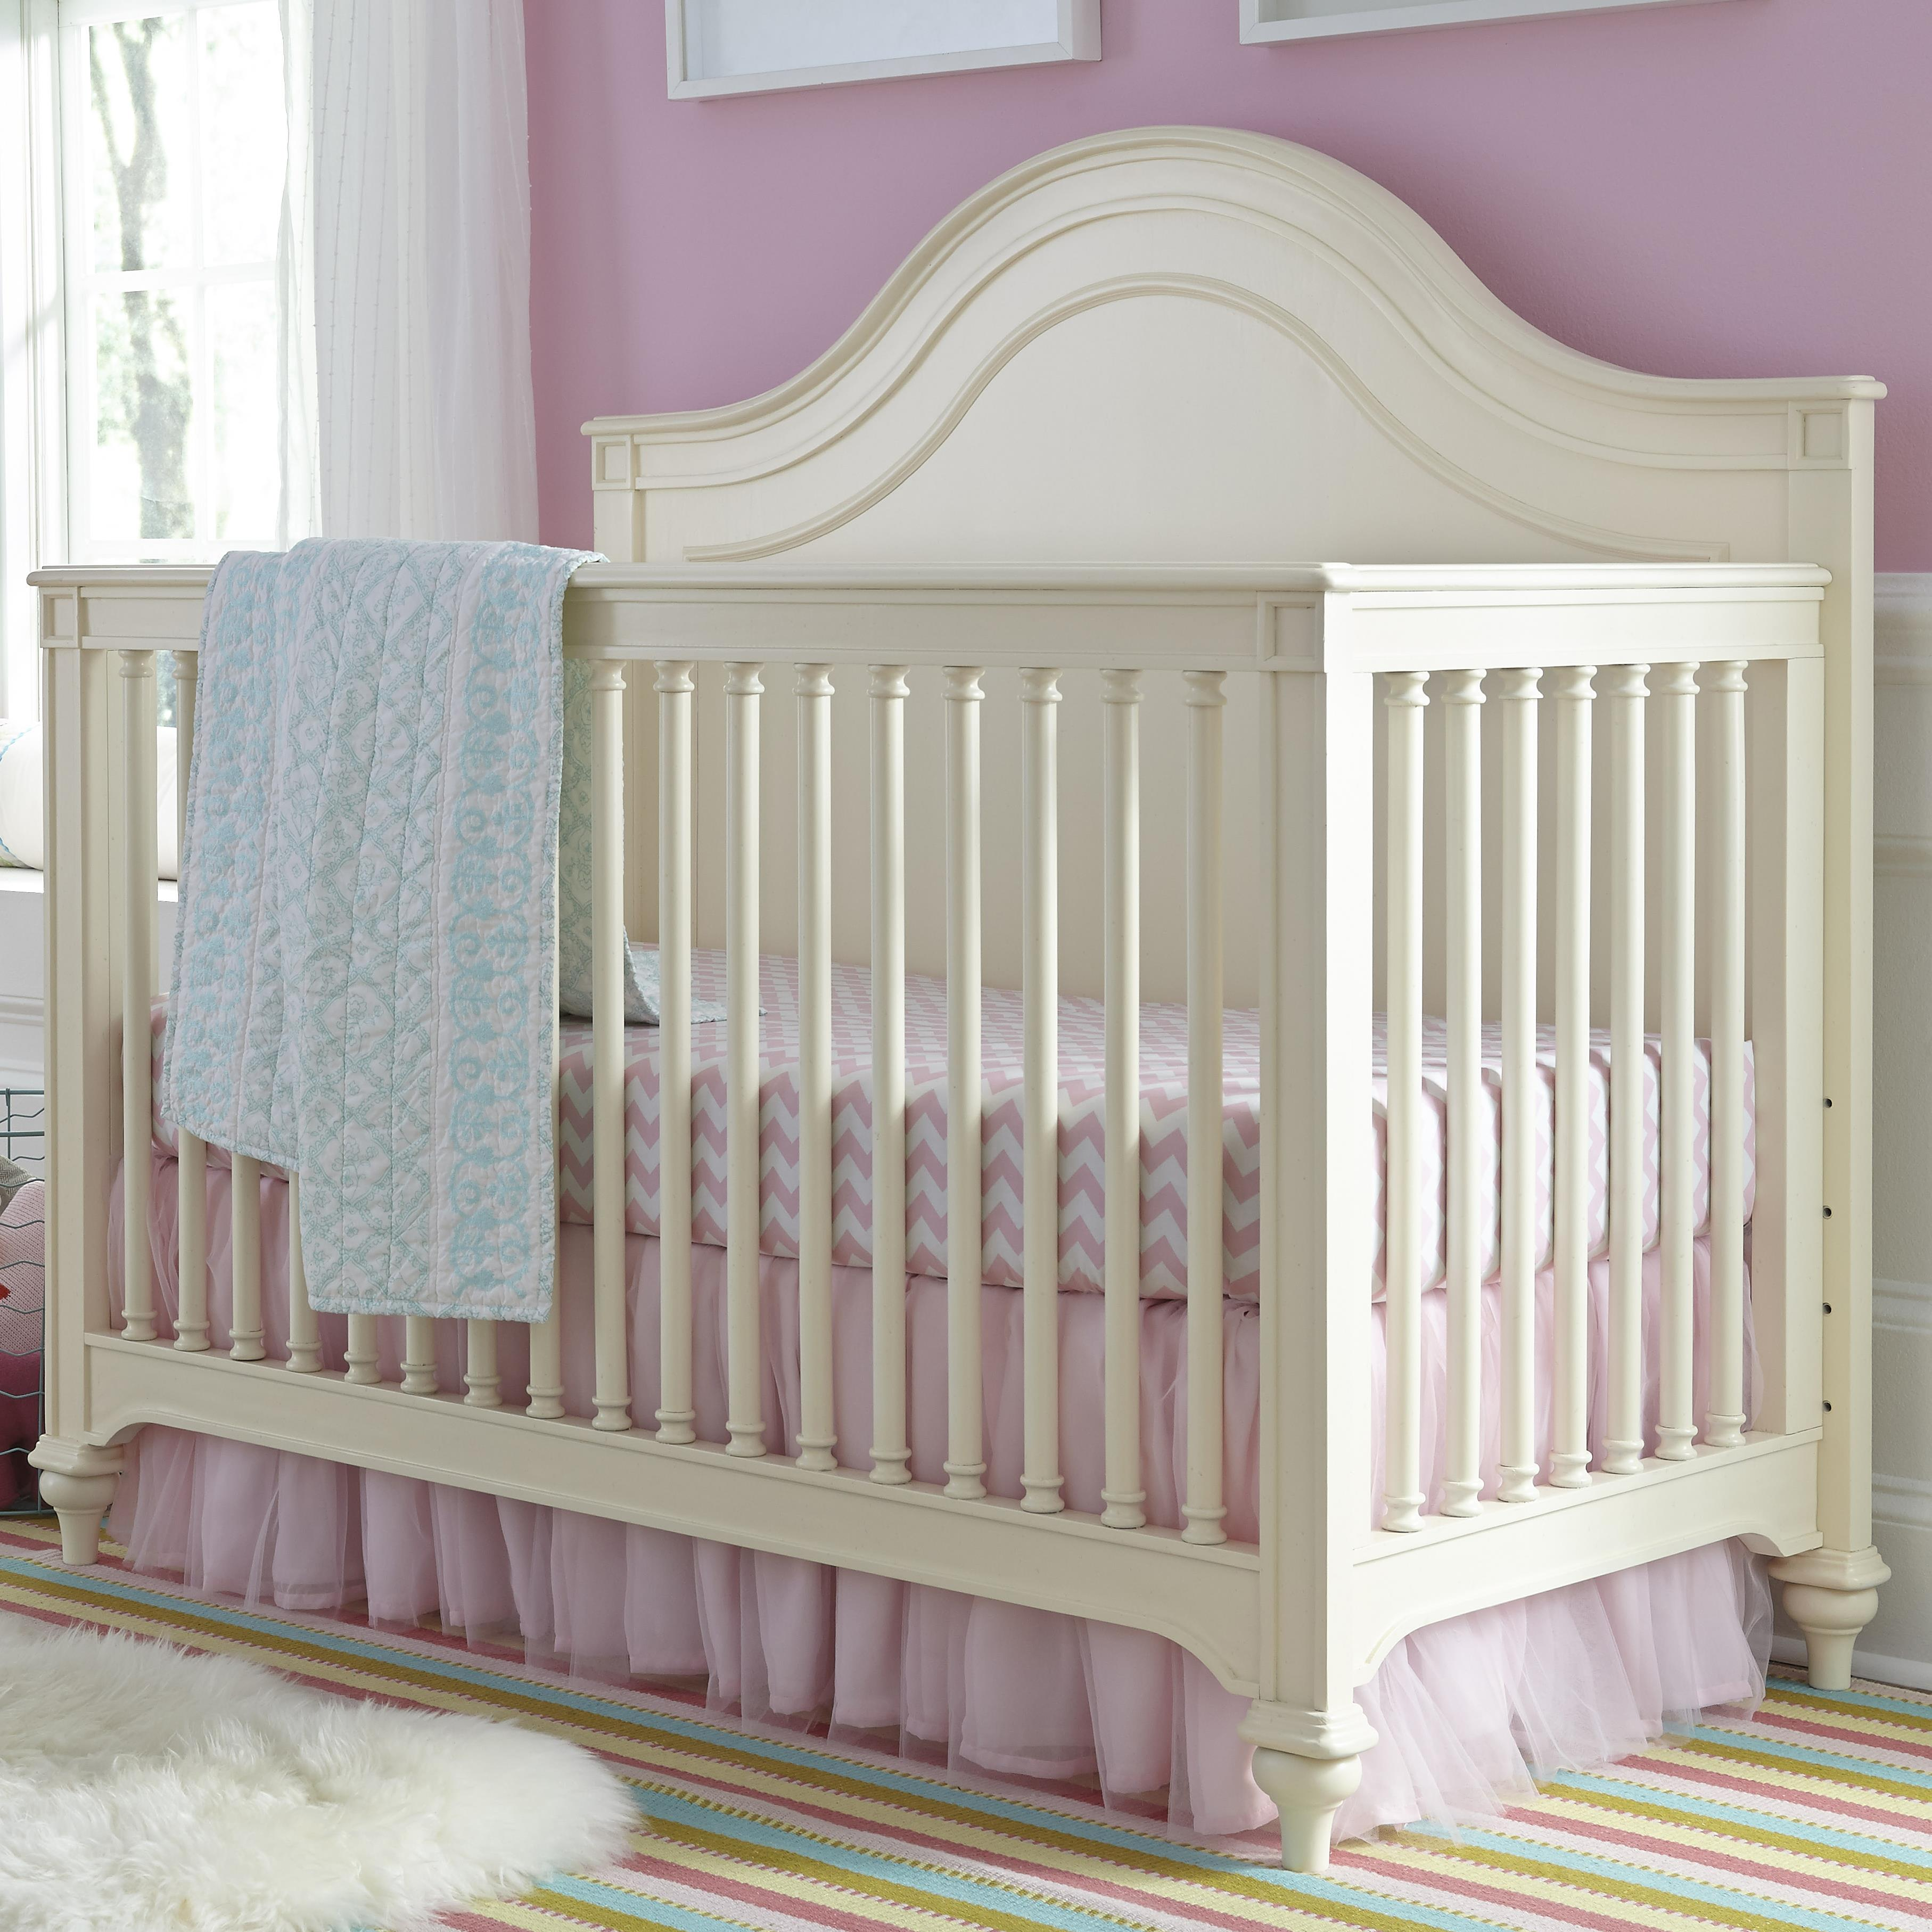 Morris Home Furnishings Greenville Greenville Convertible Crib - Item Number: 136A310